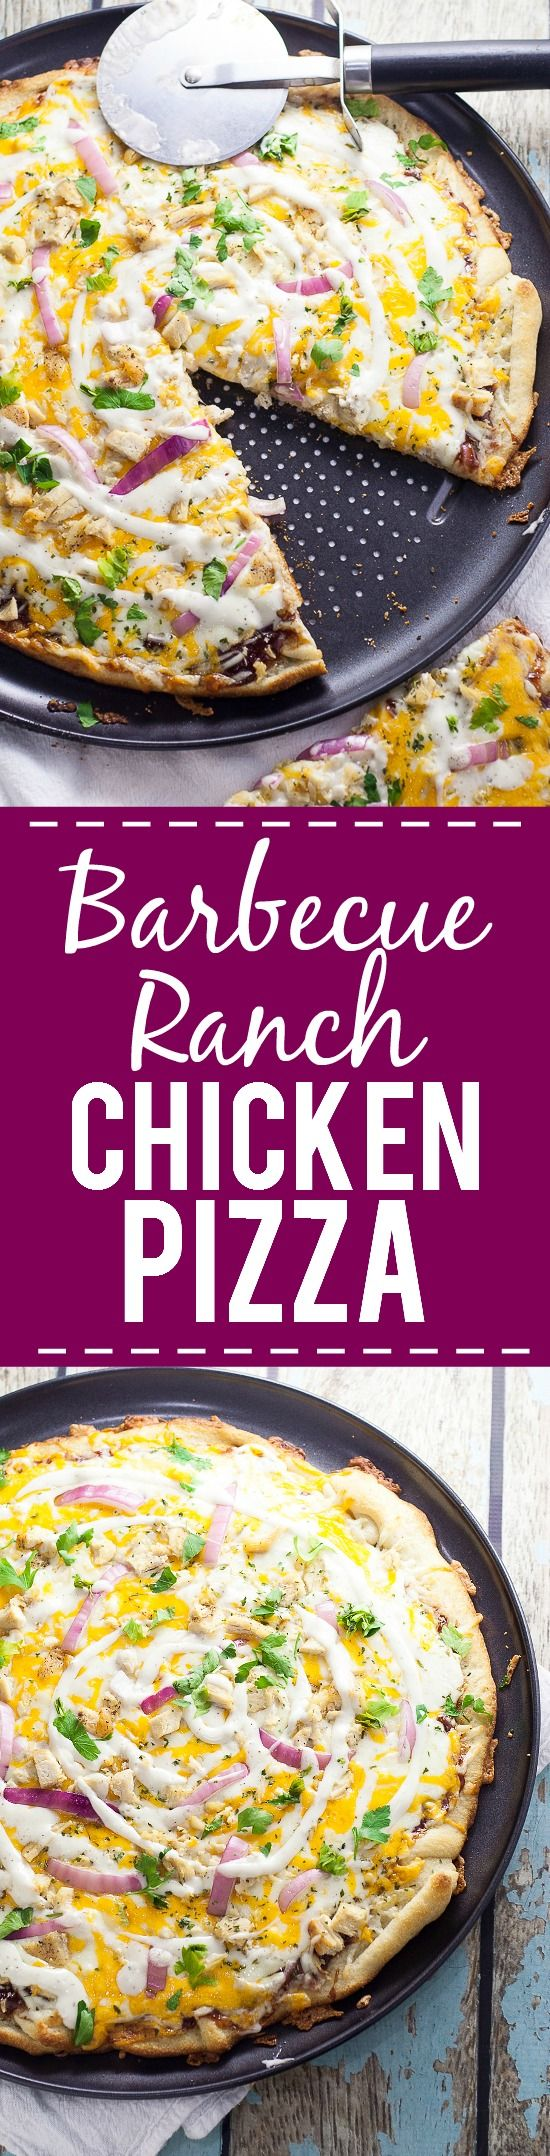 Barbecue Ranch Chicken Pizza Recipe - Barbecue and ranch are an unexpected but delicious combination that go perfectly on this Barbecue Ranch Chicken Pizza, along with chicken, red onions and lots of gooey cheese.  Perfect easy family dinner recipe!